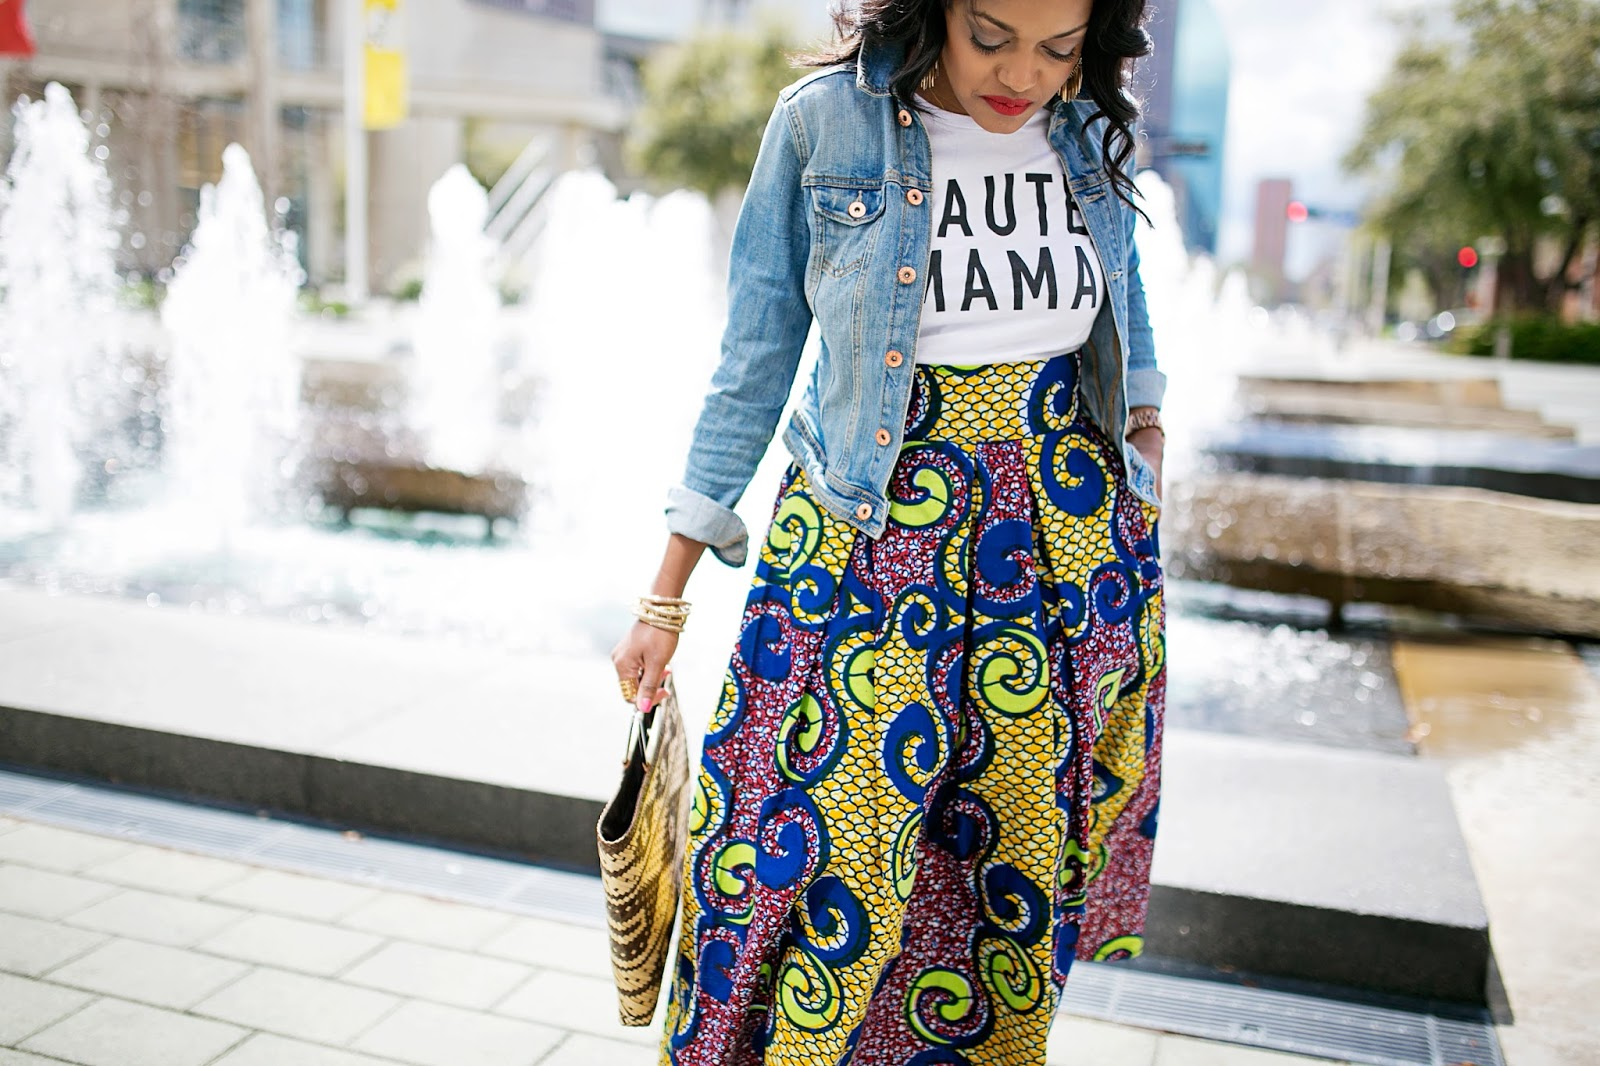 how to wear midi skirt - how to wear bold prints - Ankara print midi skirt - Steve Madden Slithur in Red- haute mama t shirt- banana republic straw handbag- fashion blogger- dallas blogger- CAS Clothing- black girl blogger